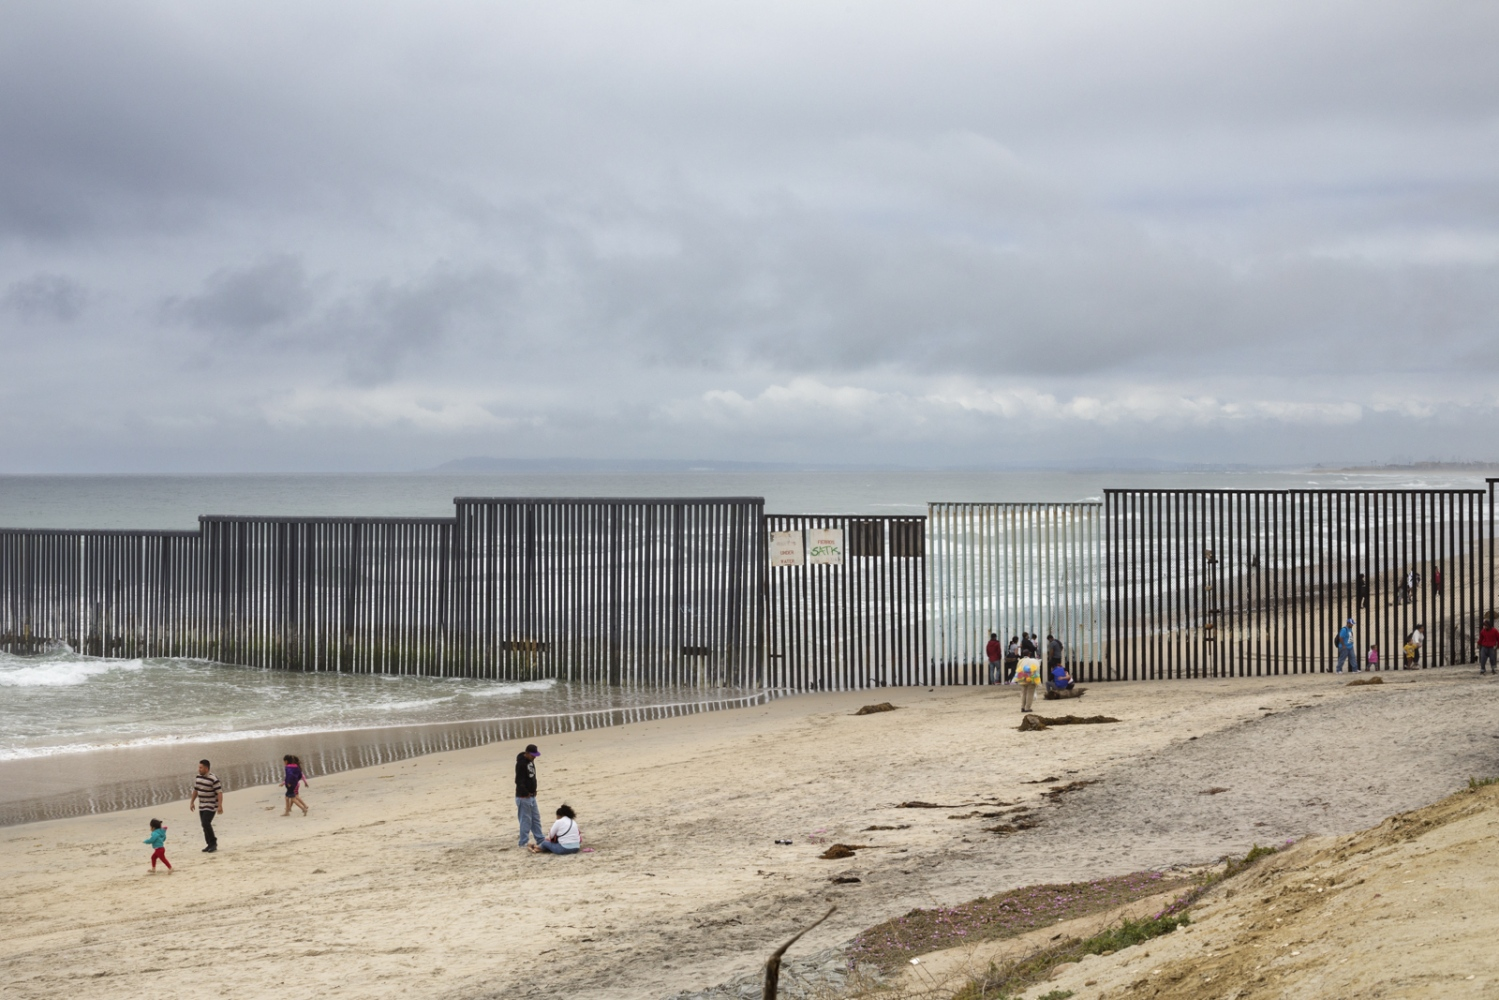 The border between Tijuana and San Diego is today a massive metal wall that has been reinforced multiple times since the 1990s. It extends down to the beach stretching out some three hundred feet into the Pacific Ocean.